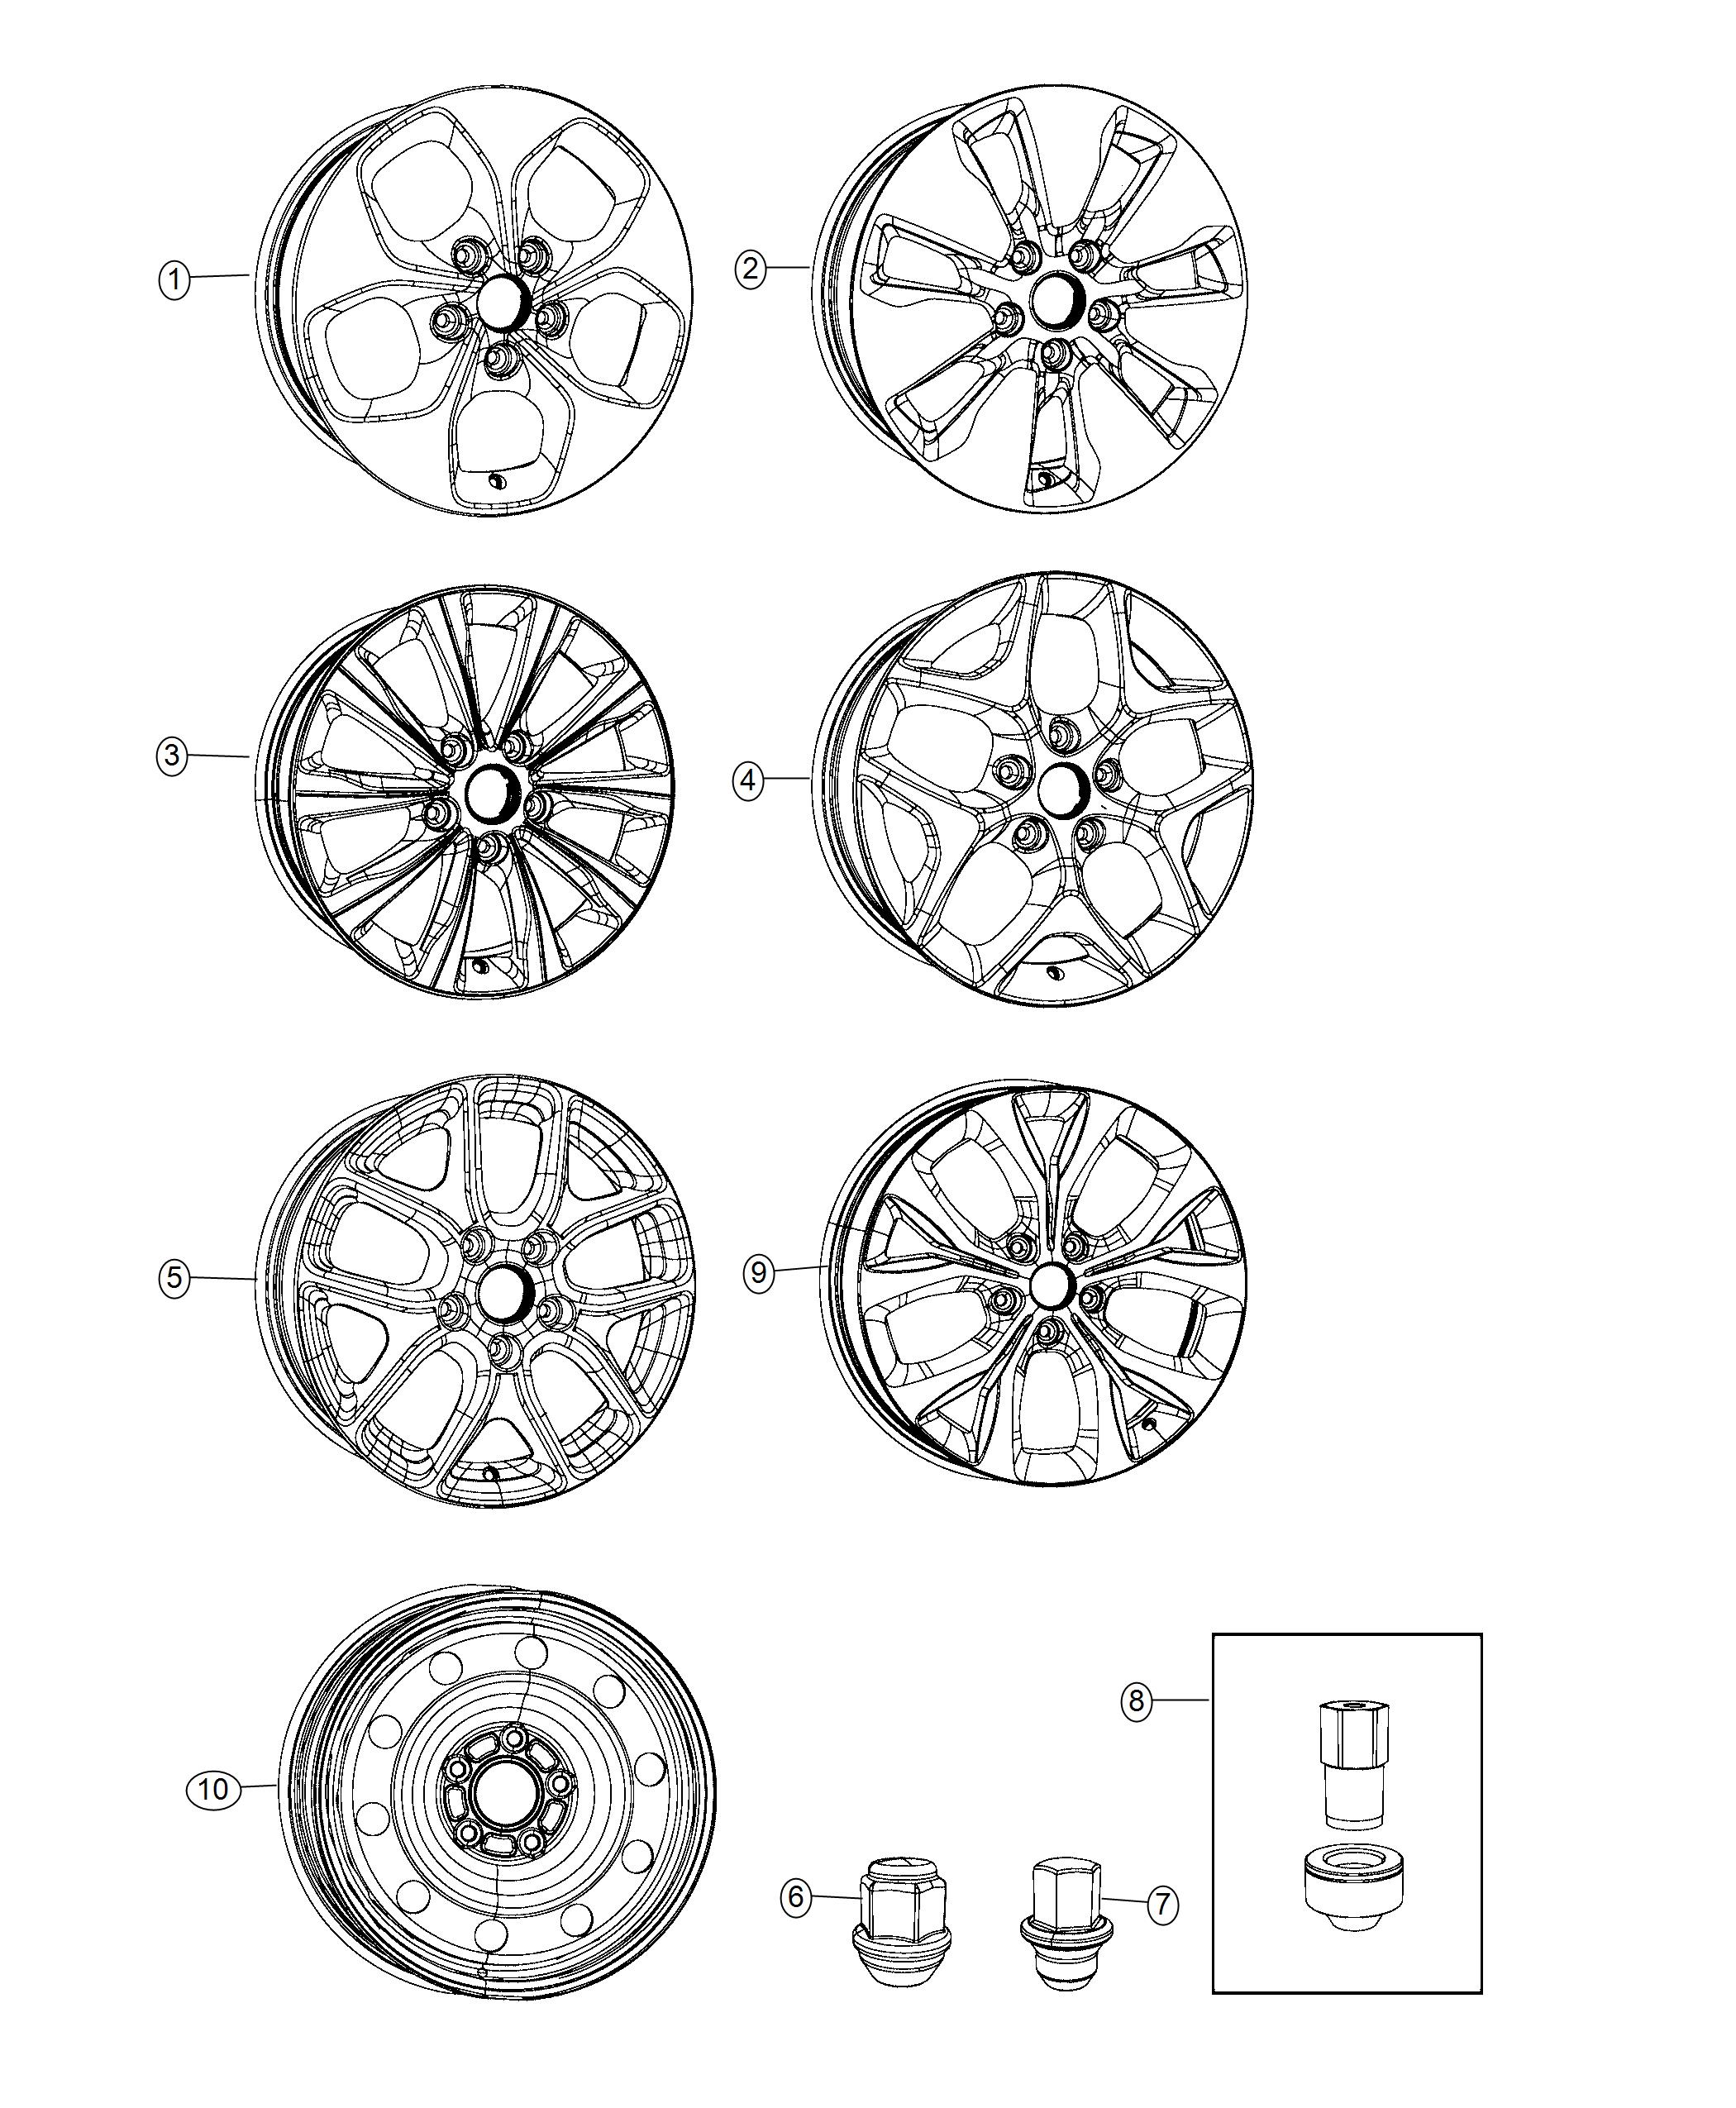 2019 Chrysler Pacifica Wheel. Aluminum. Front Or Rear. [20